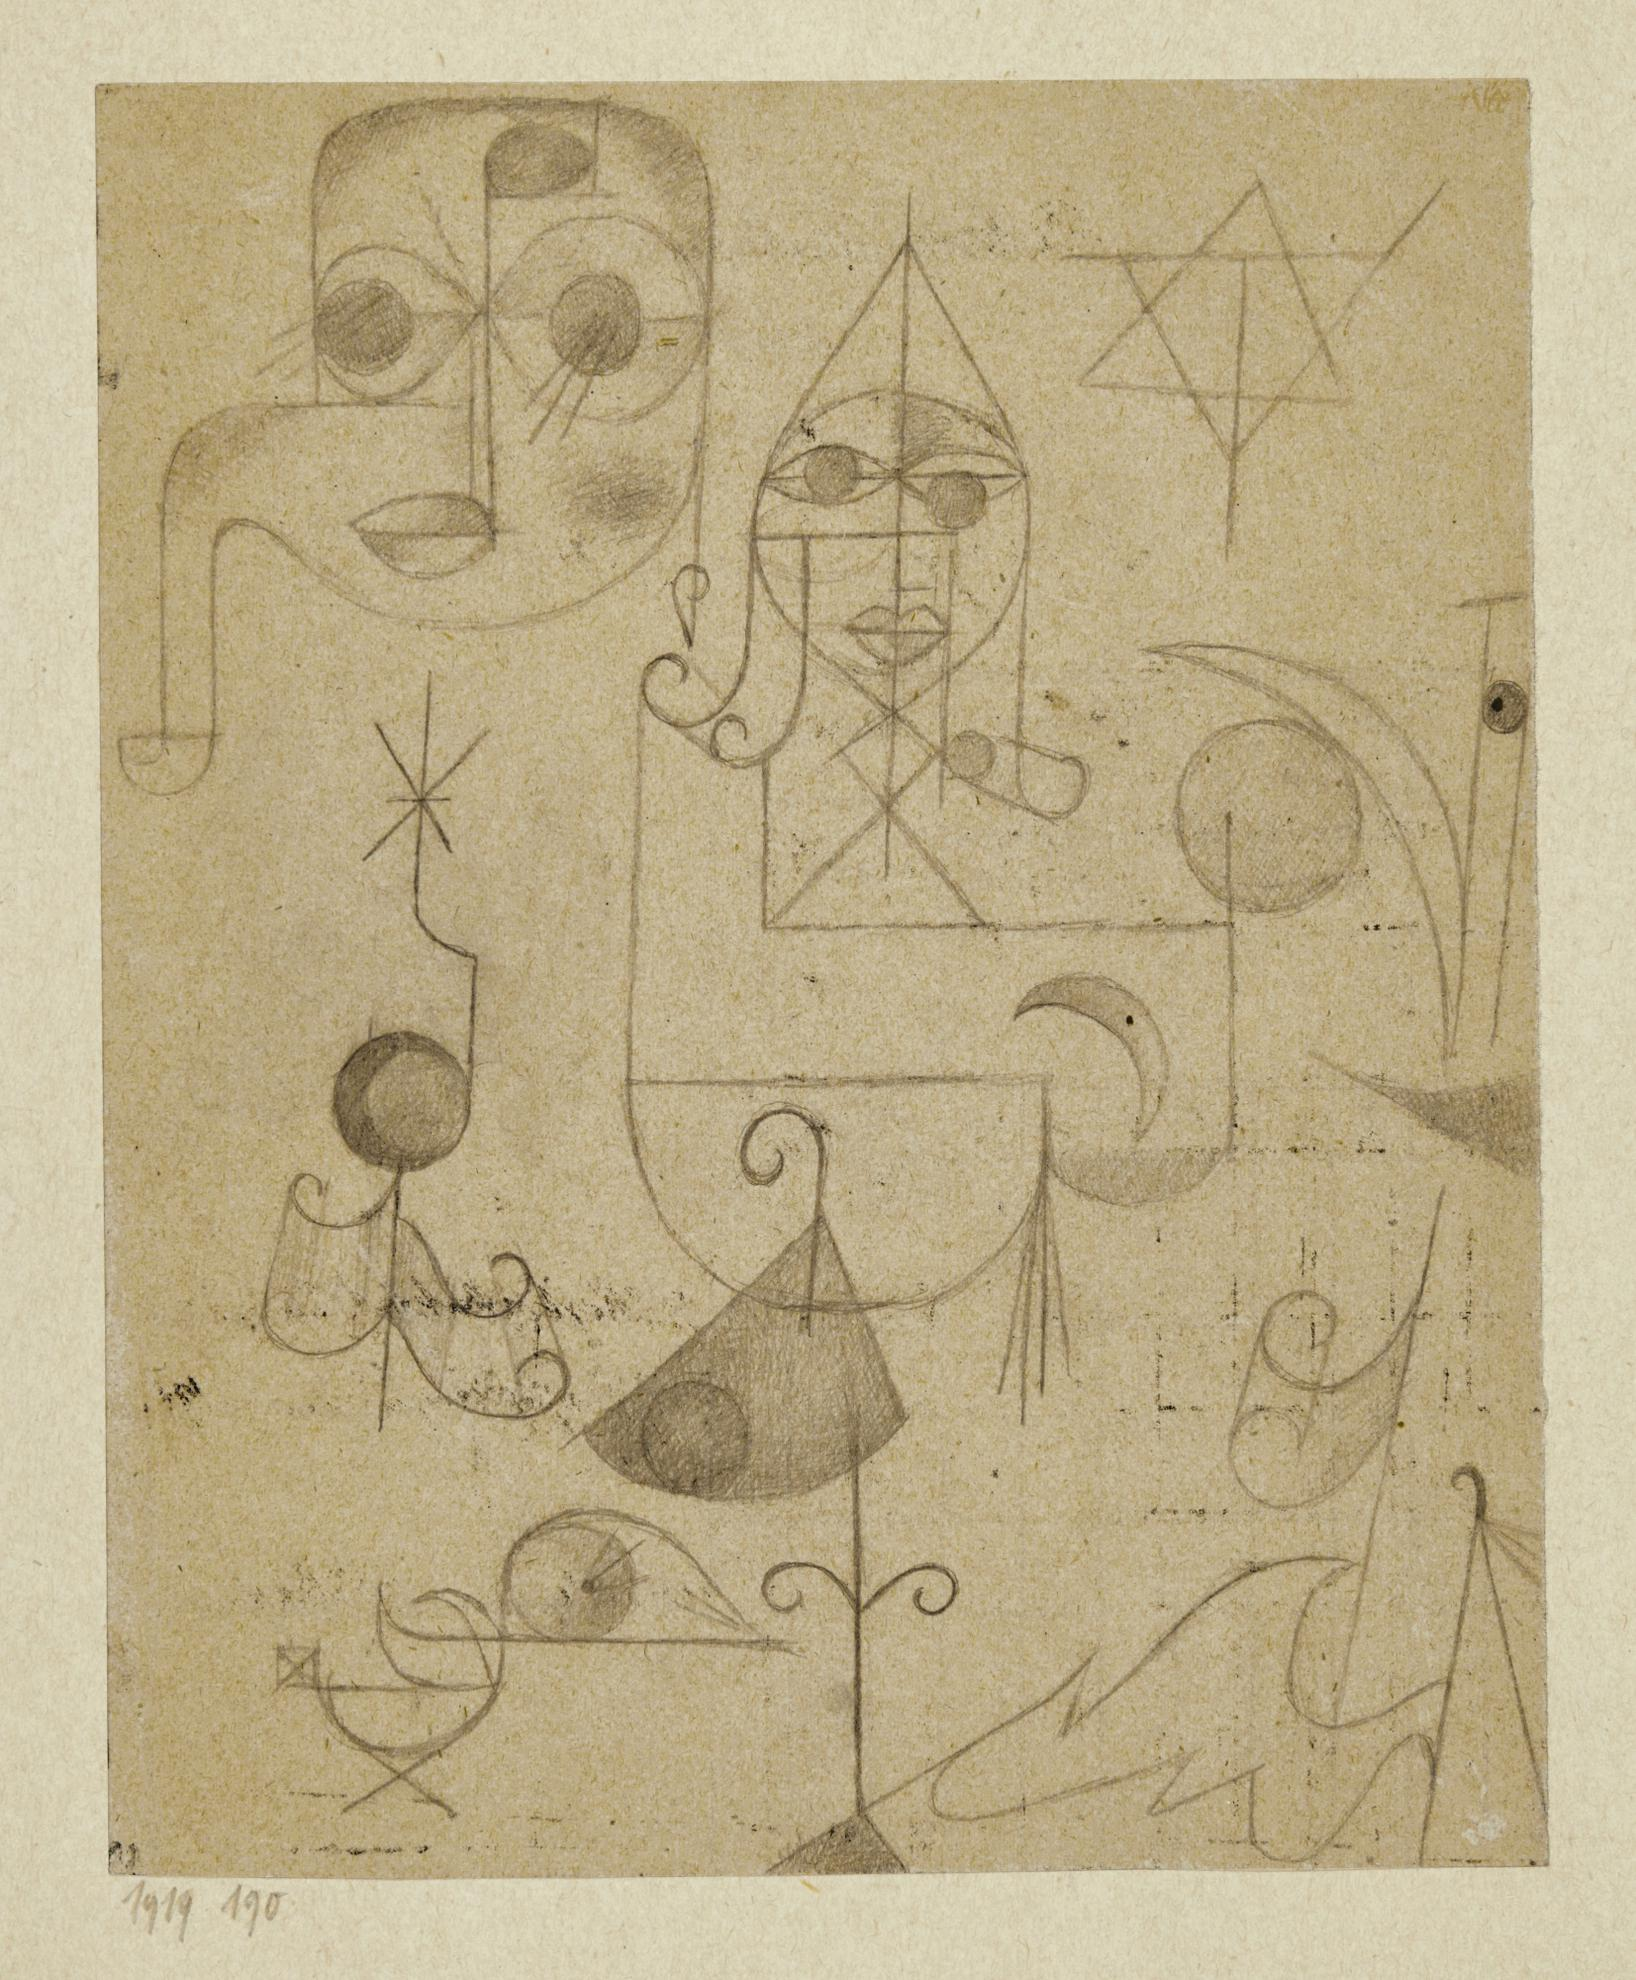 Paul Klee-Gestirne Und Sternbilder (Stars And Constellations)-1919